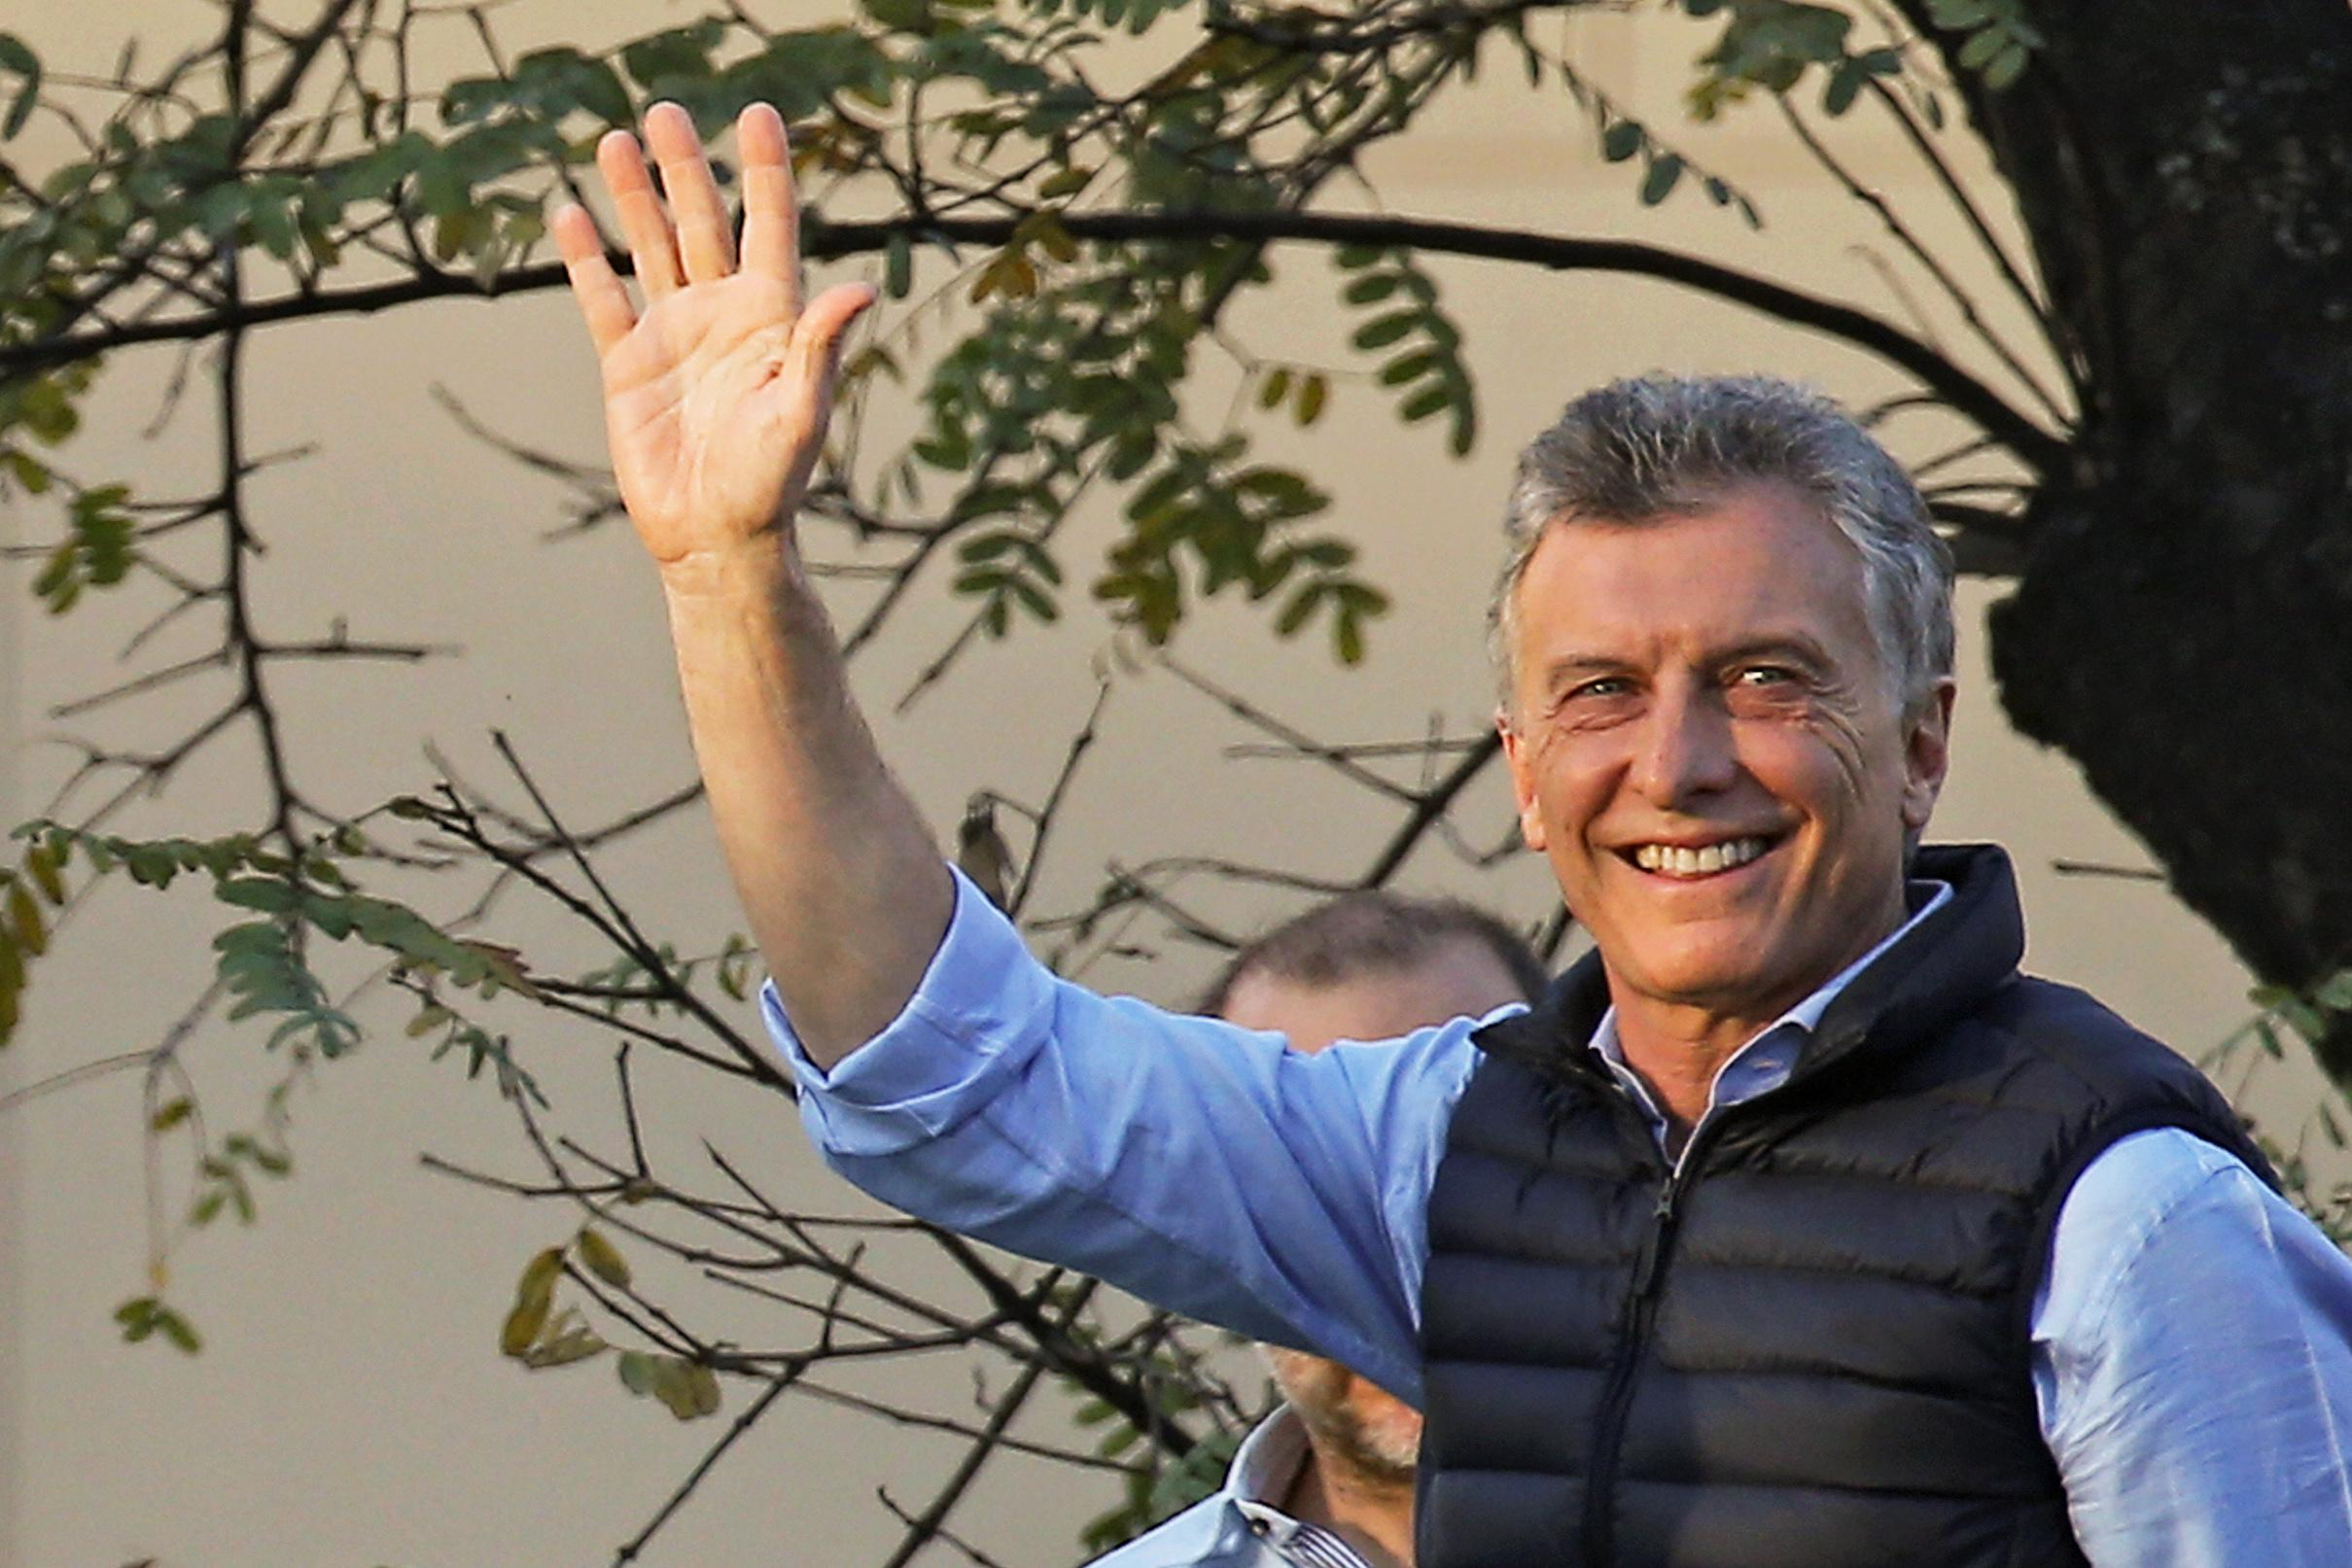 Macri seeks boost from young voters with employer tax cut incentive